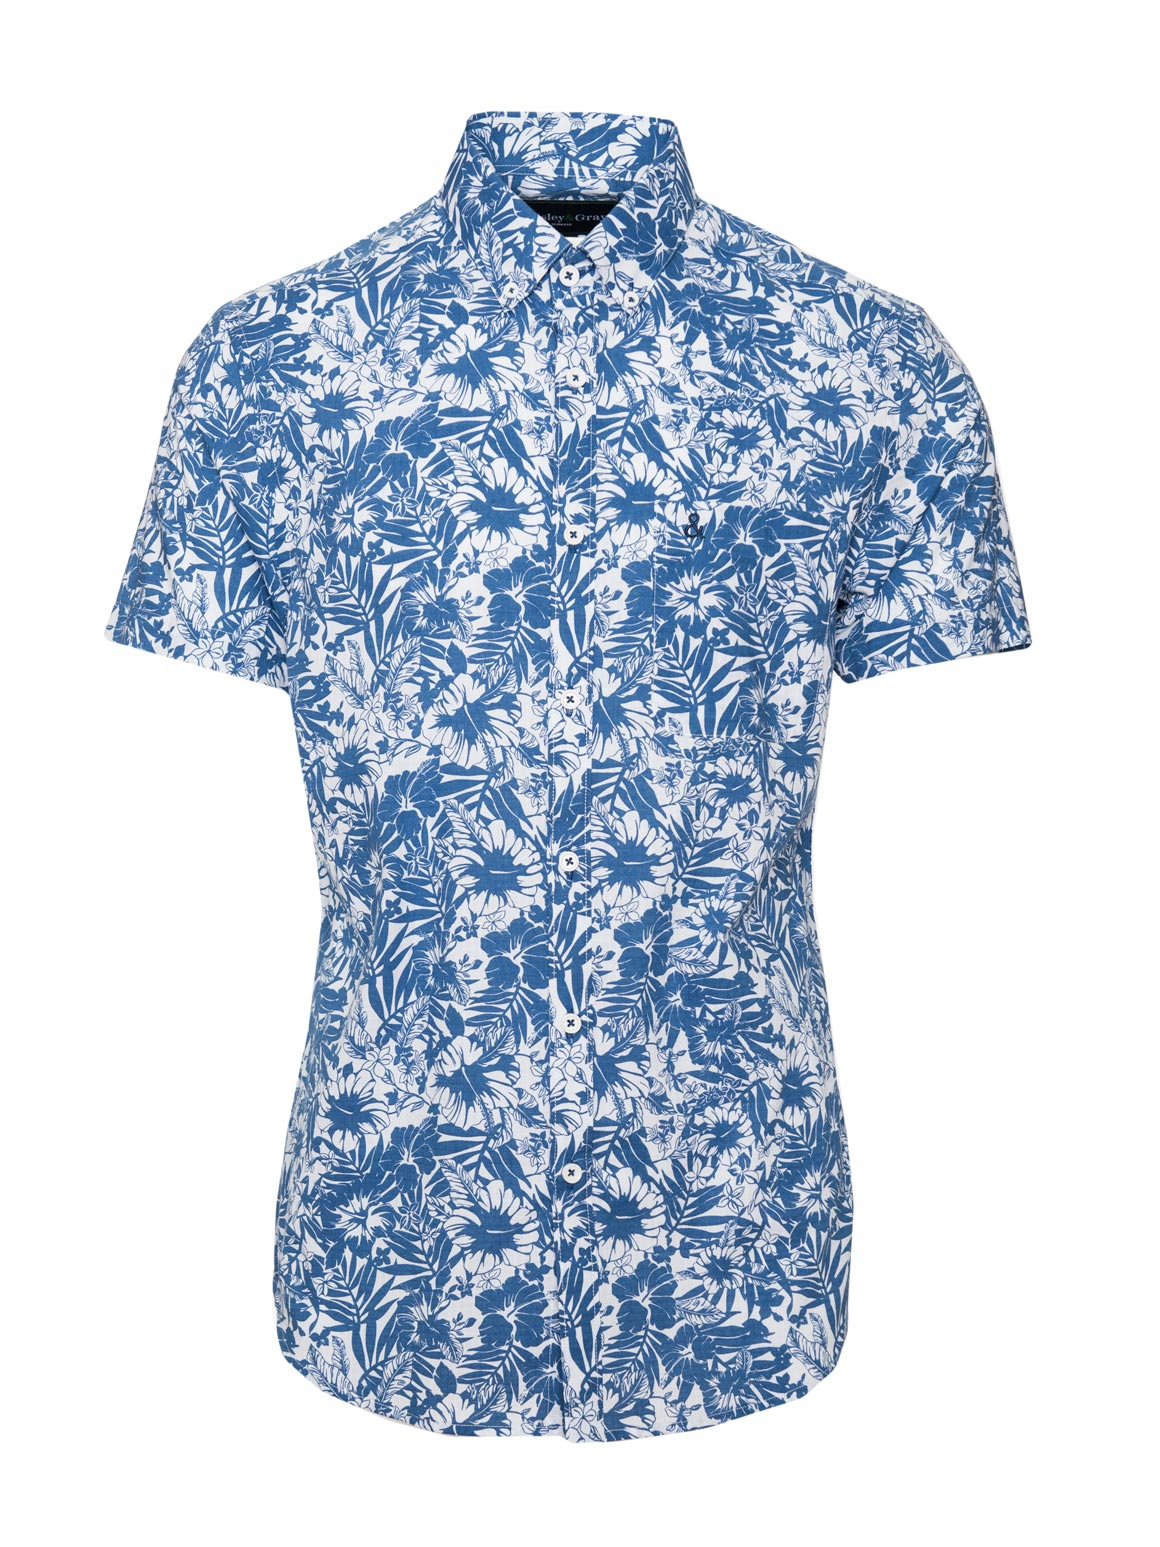 paisley & gray blue & white floral slim fit button-down short sleeve dress shirt 2231W